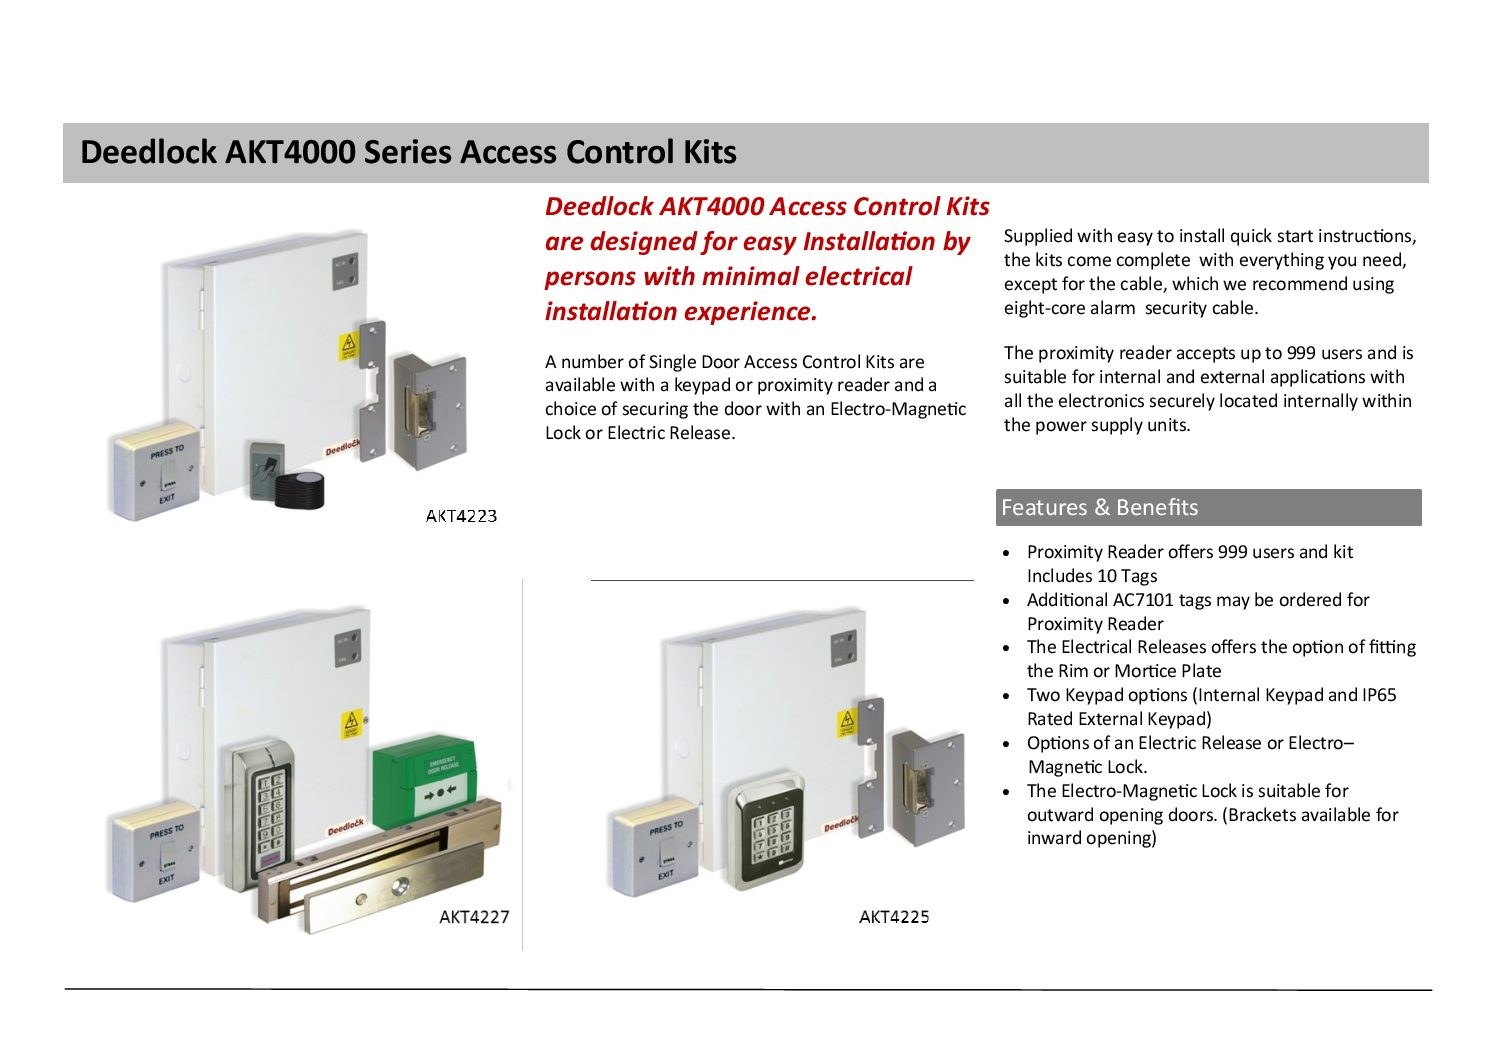 Deedlock AKT4000 Series Access Control Kits